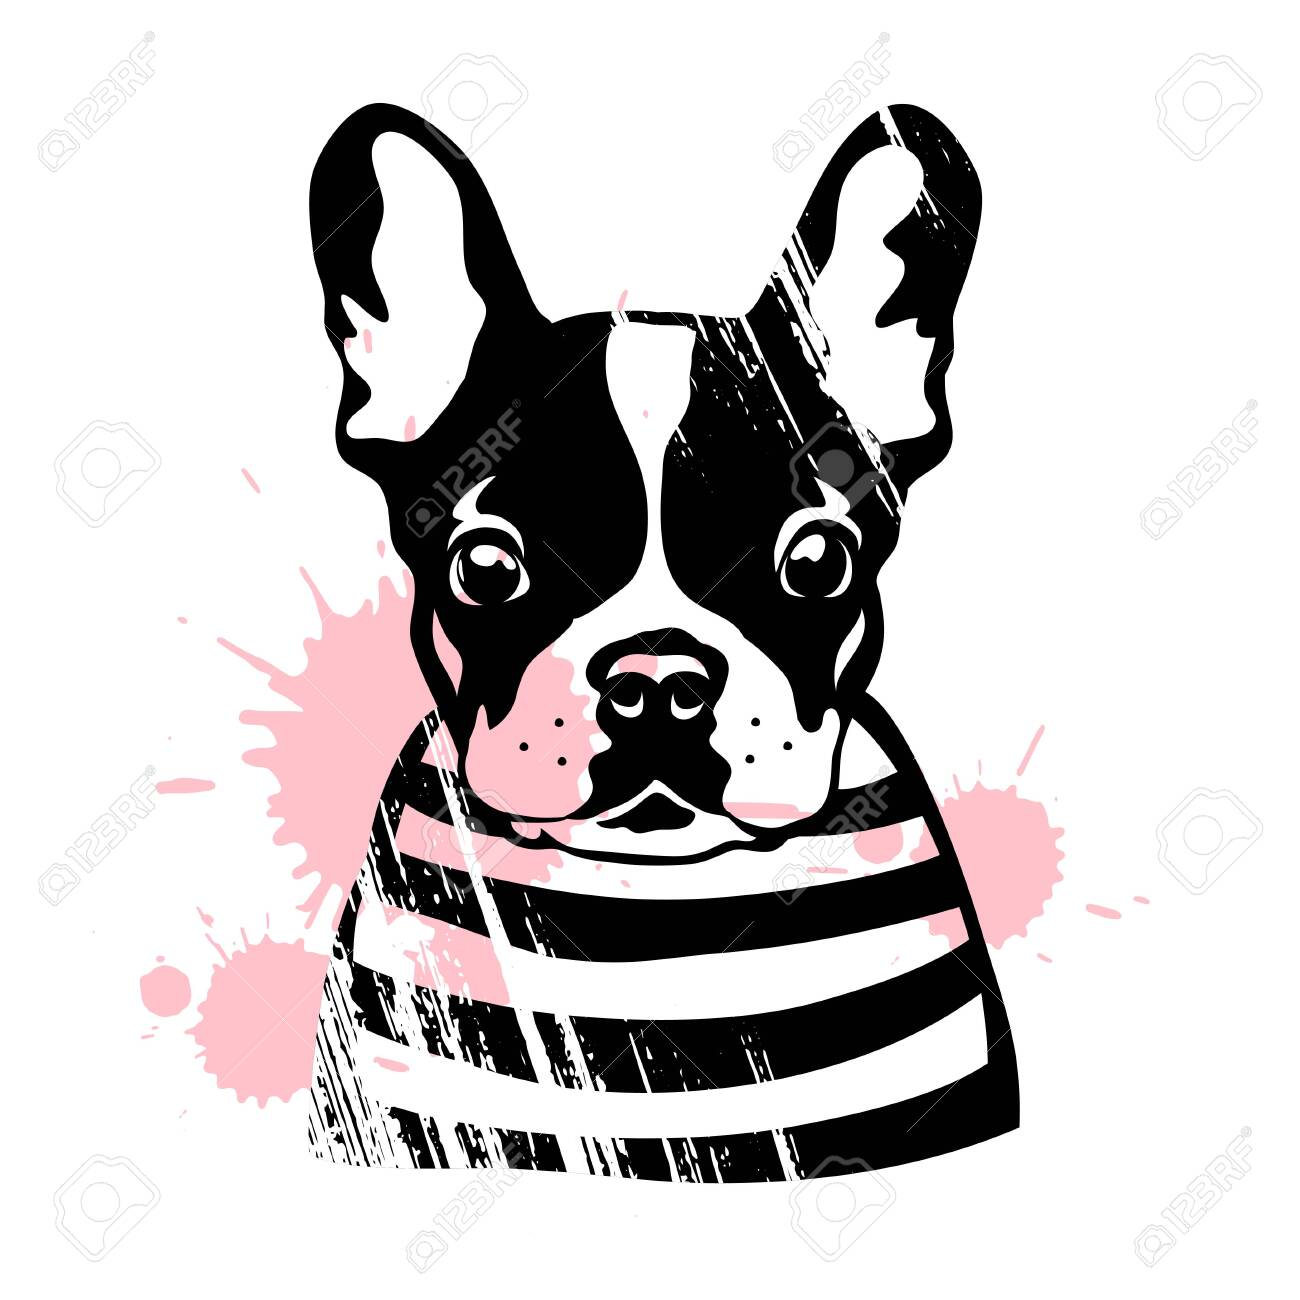 French bulldog. Cute black and white dog in a striped sweater. Vector illustration - 155851192